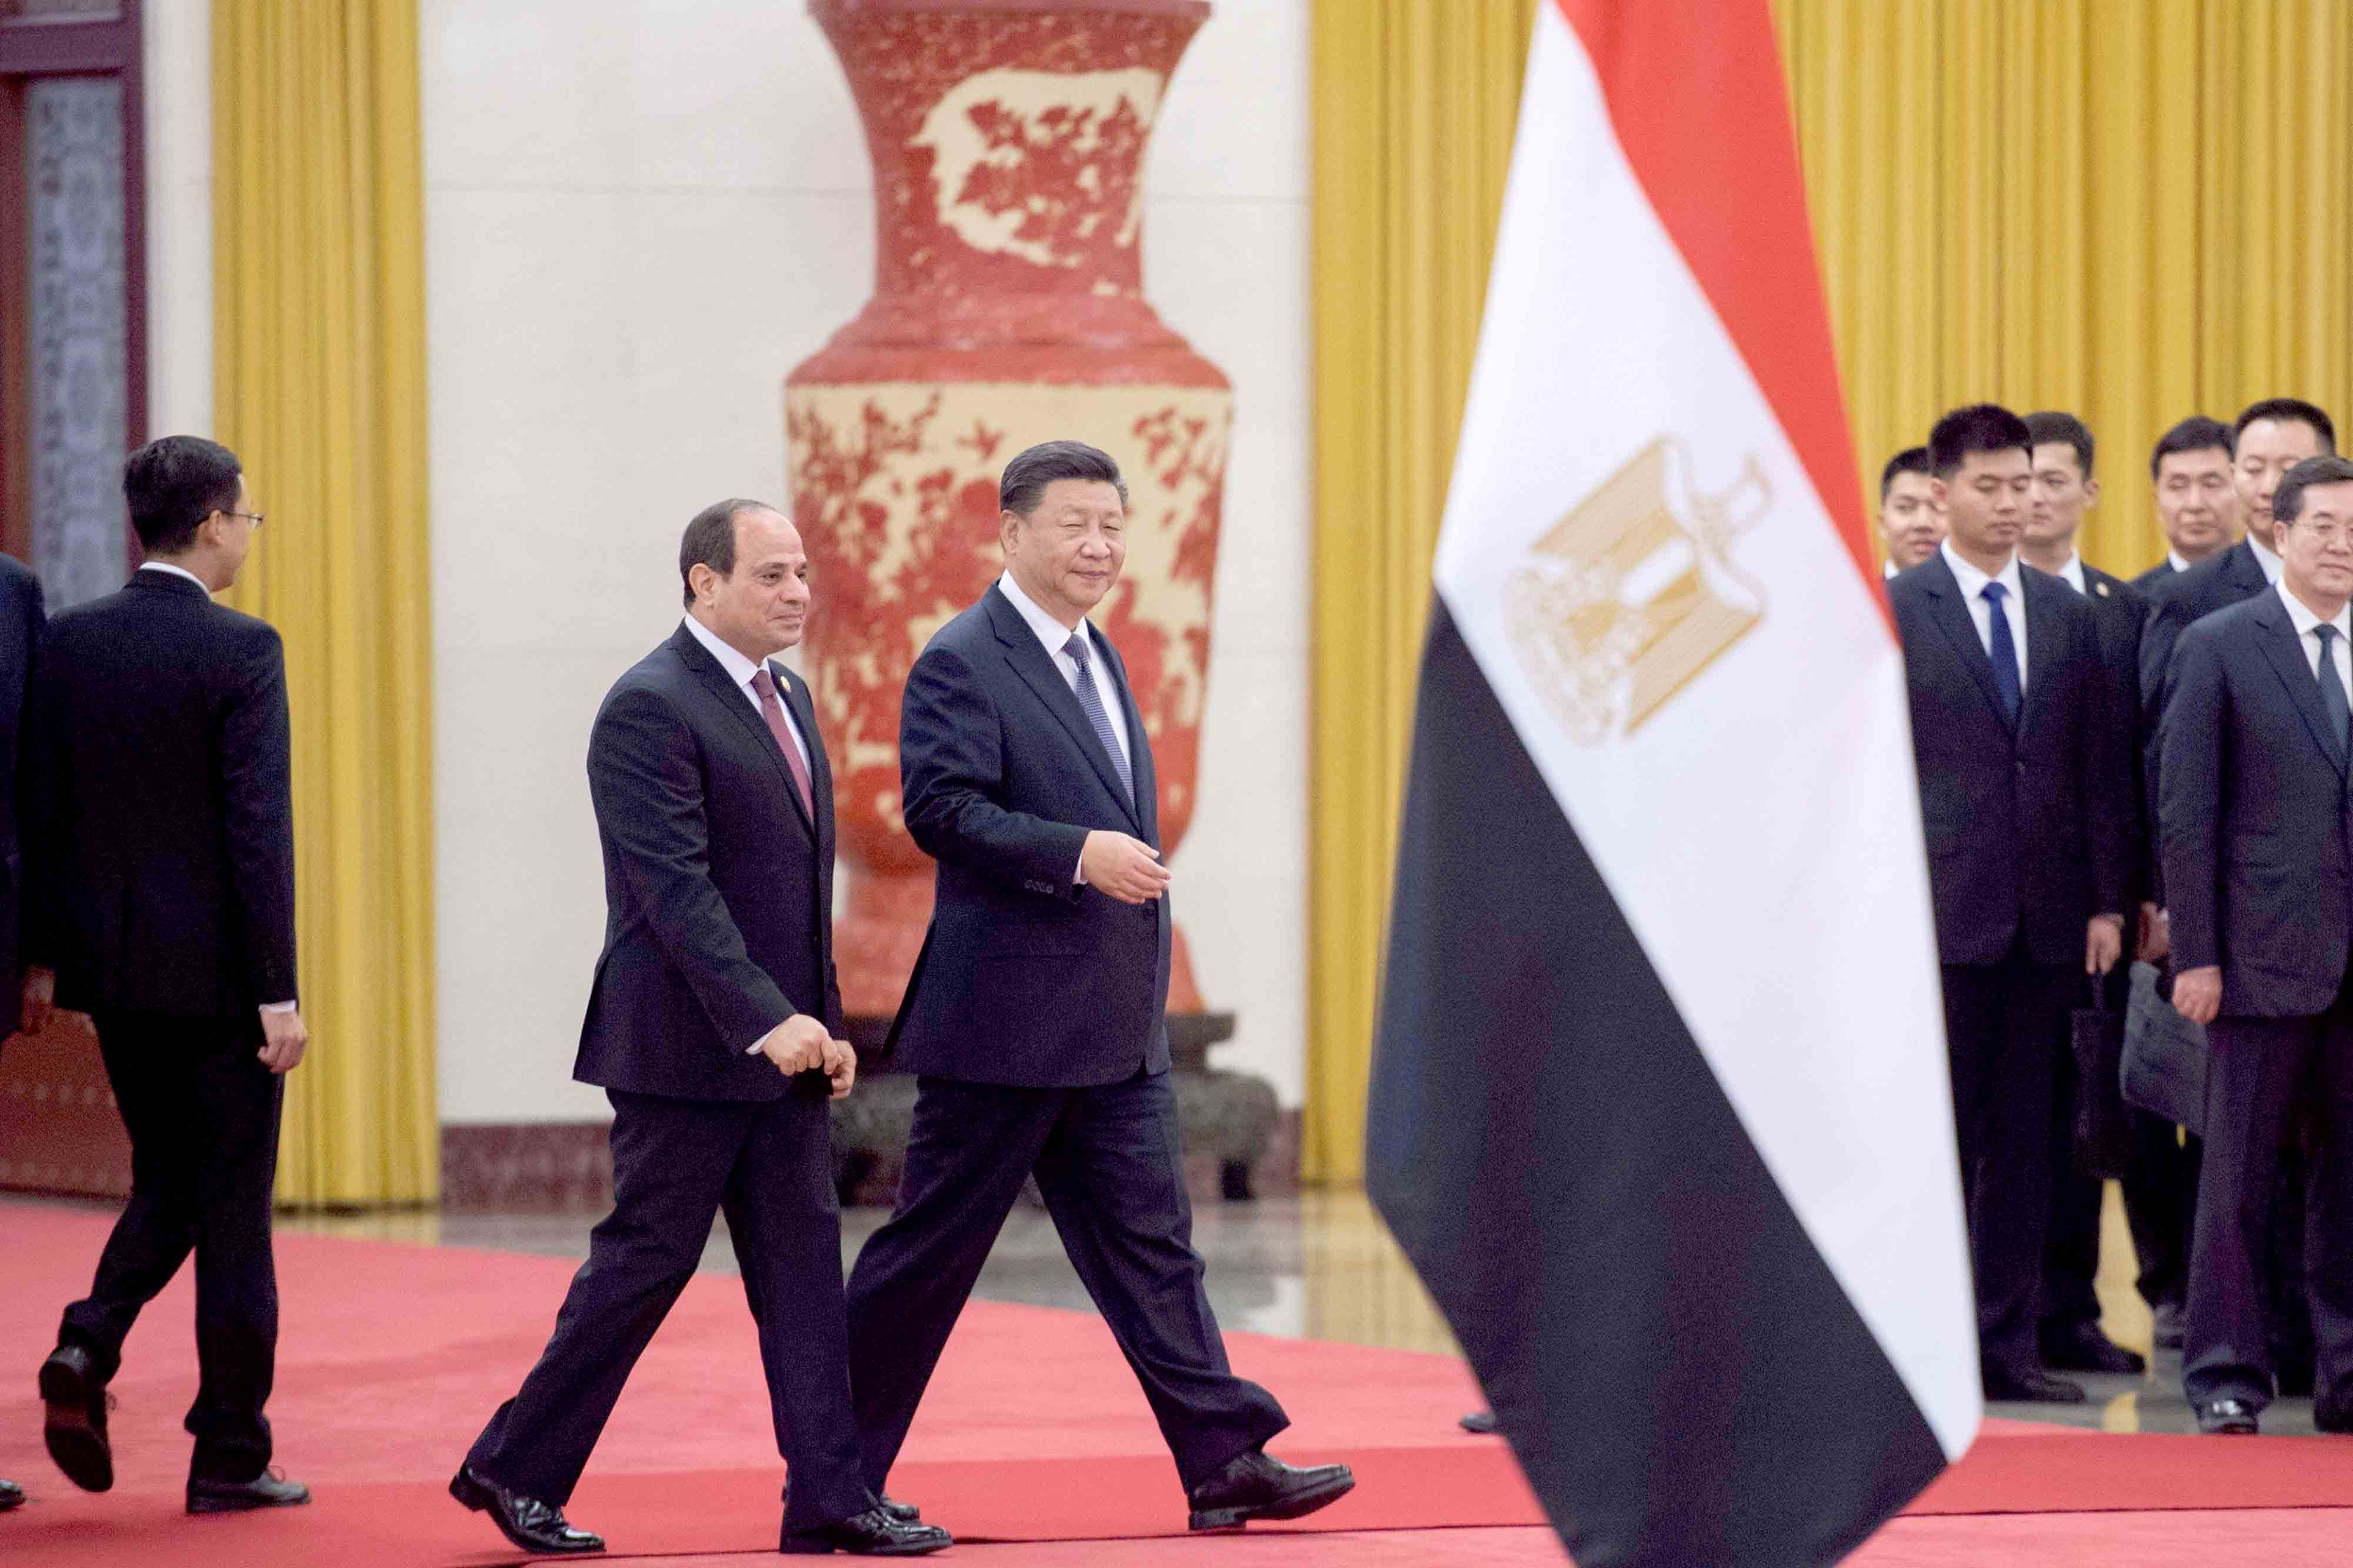 Diversifying partnerships. China's President Xi Jinping (R) and his Egyptian counterpart Abdel Fattah al-Sisi (C) walk during a welcoming ceremony in Beijing, on September 1.(AFP)